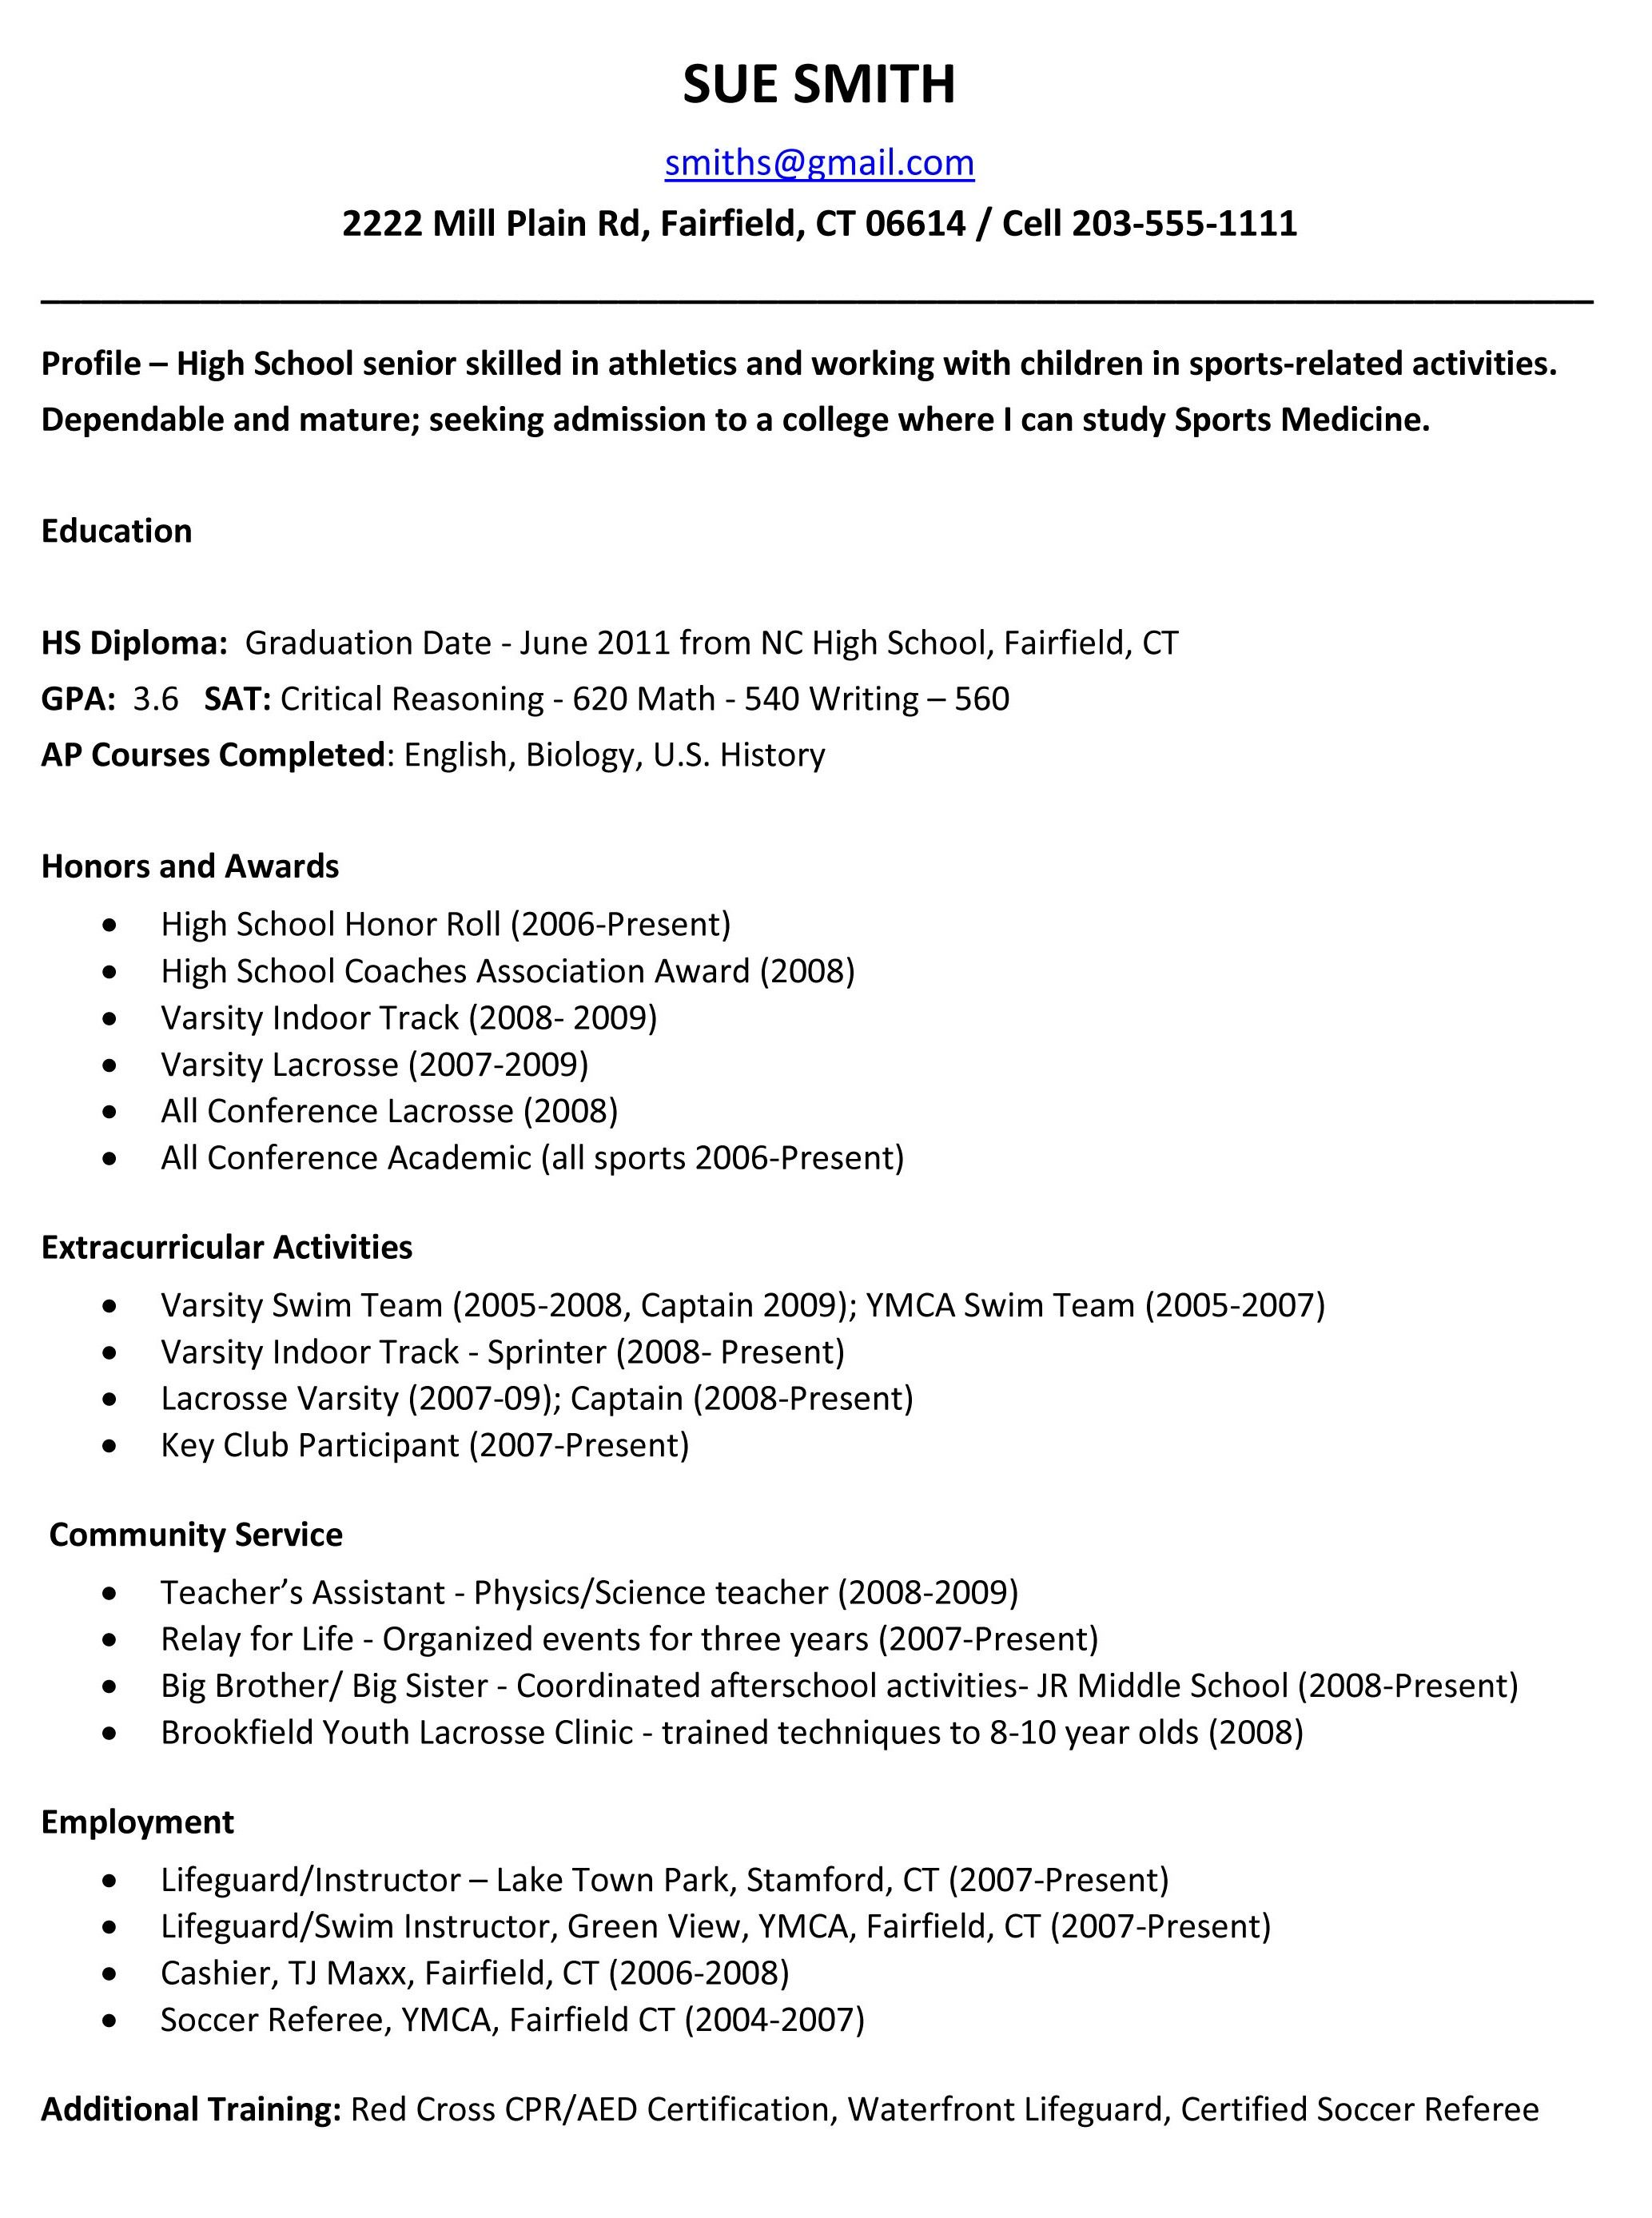 example resume for high school students for college applications school resume templateregularmidwesternerscom regularmidwesterners - Example Resume For High School Graduate